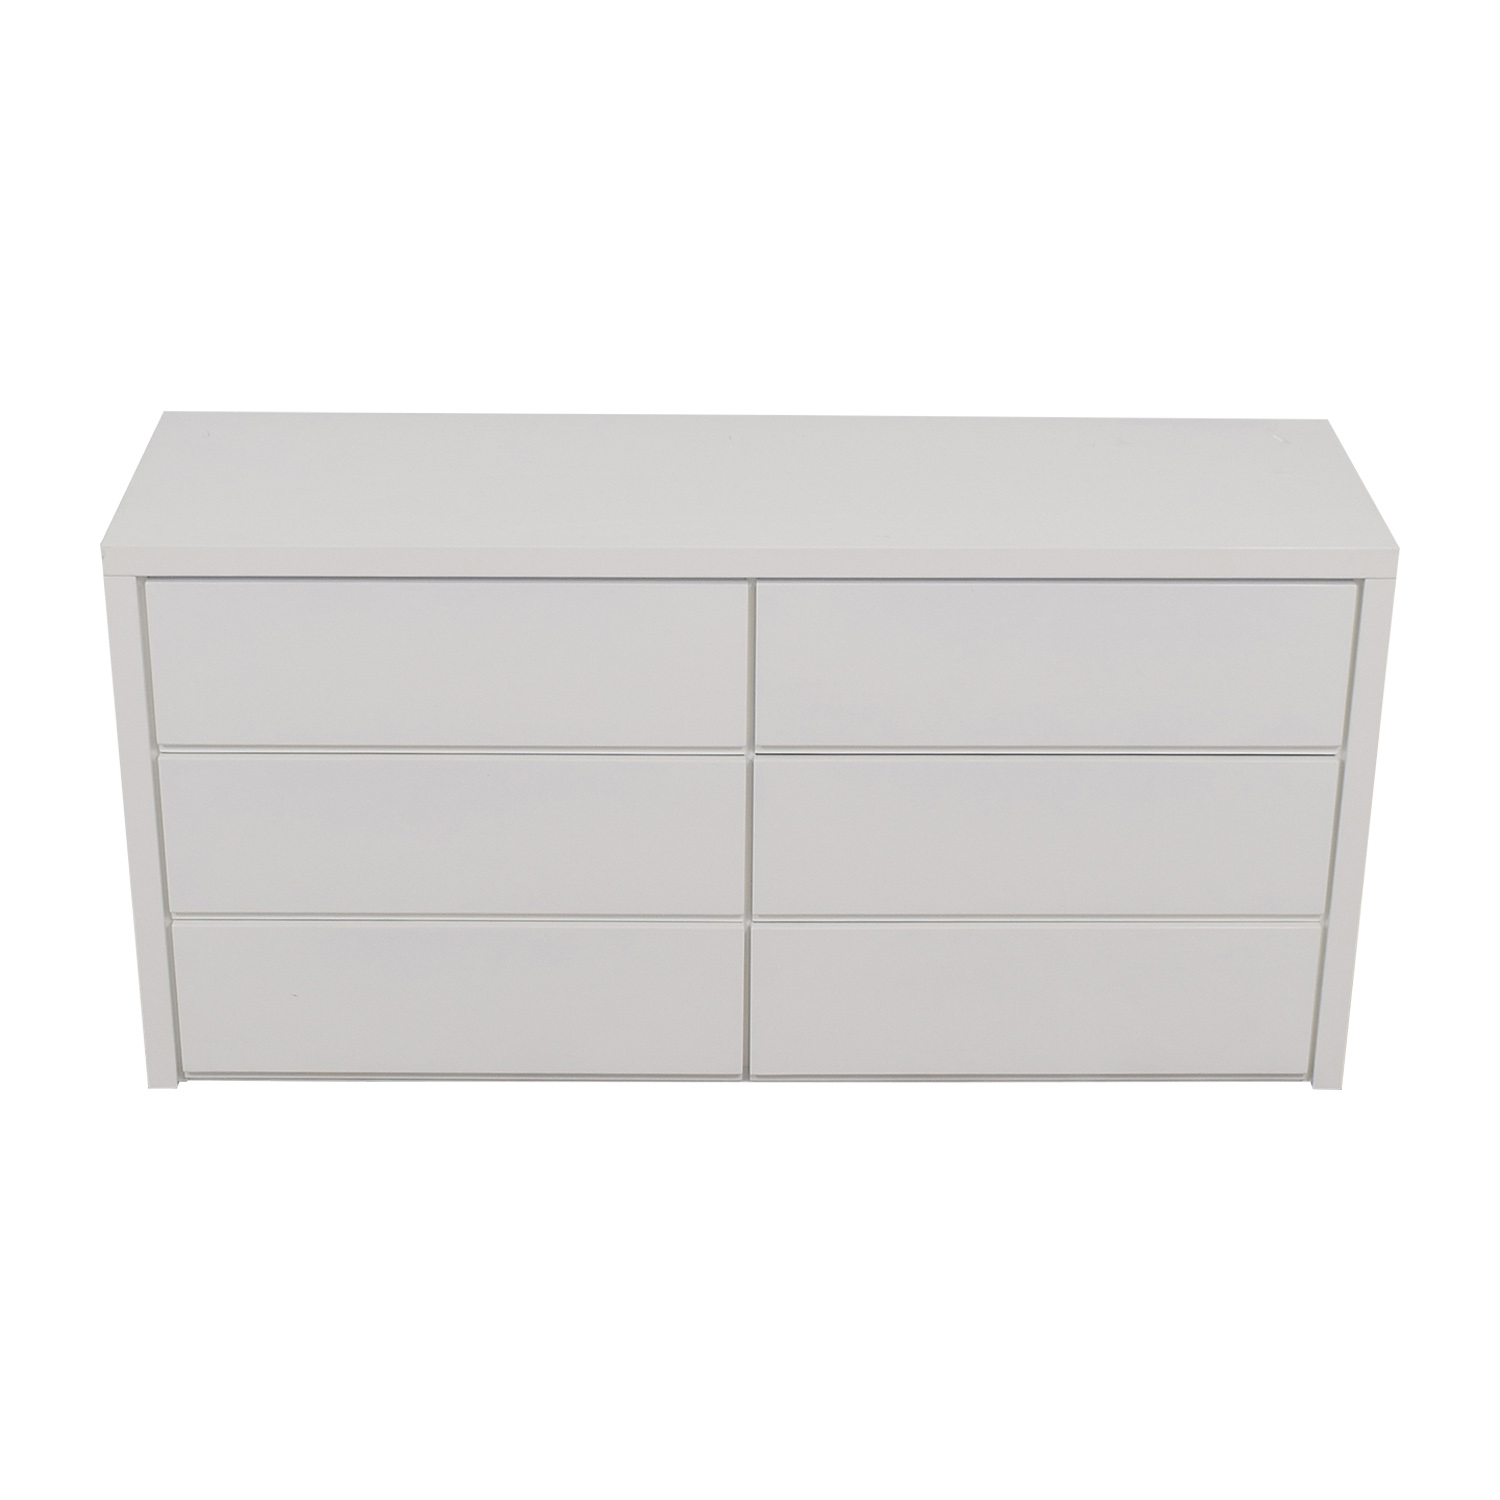 buy Modani Dino White Six-Drawer Dresser Modani